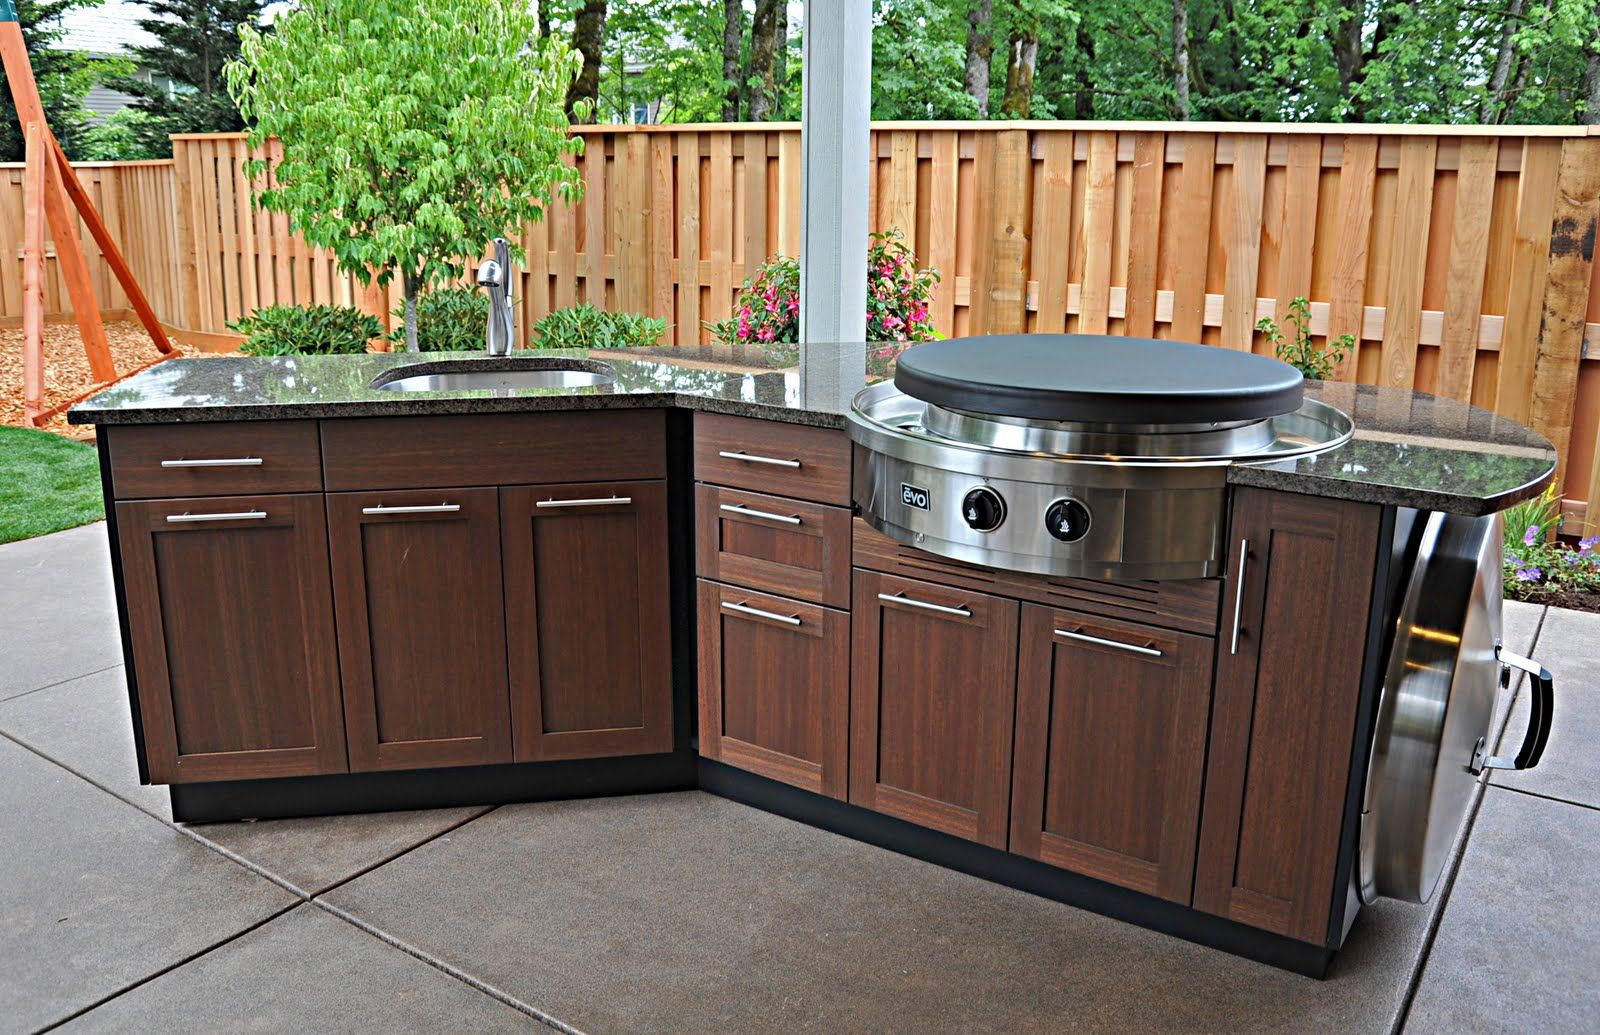 DIY Outdoor Kitchen Outdoor Kitchen Cabinets Design